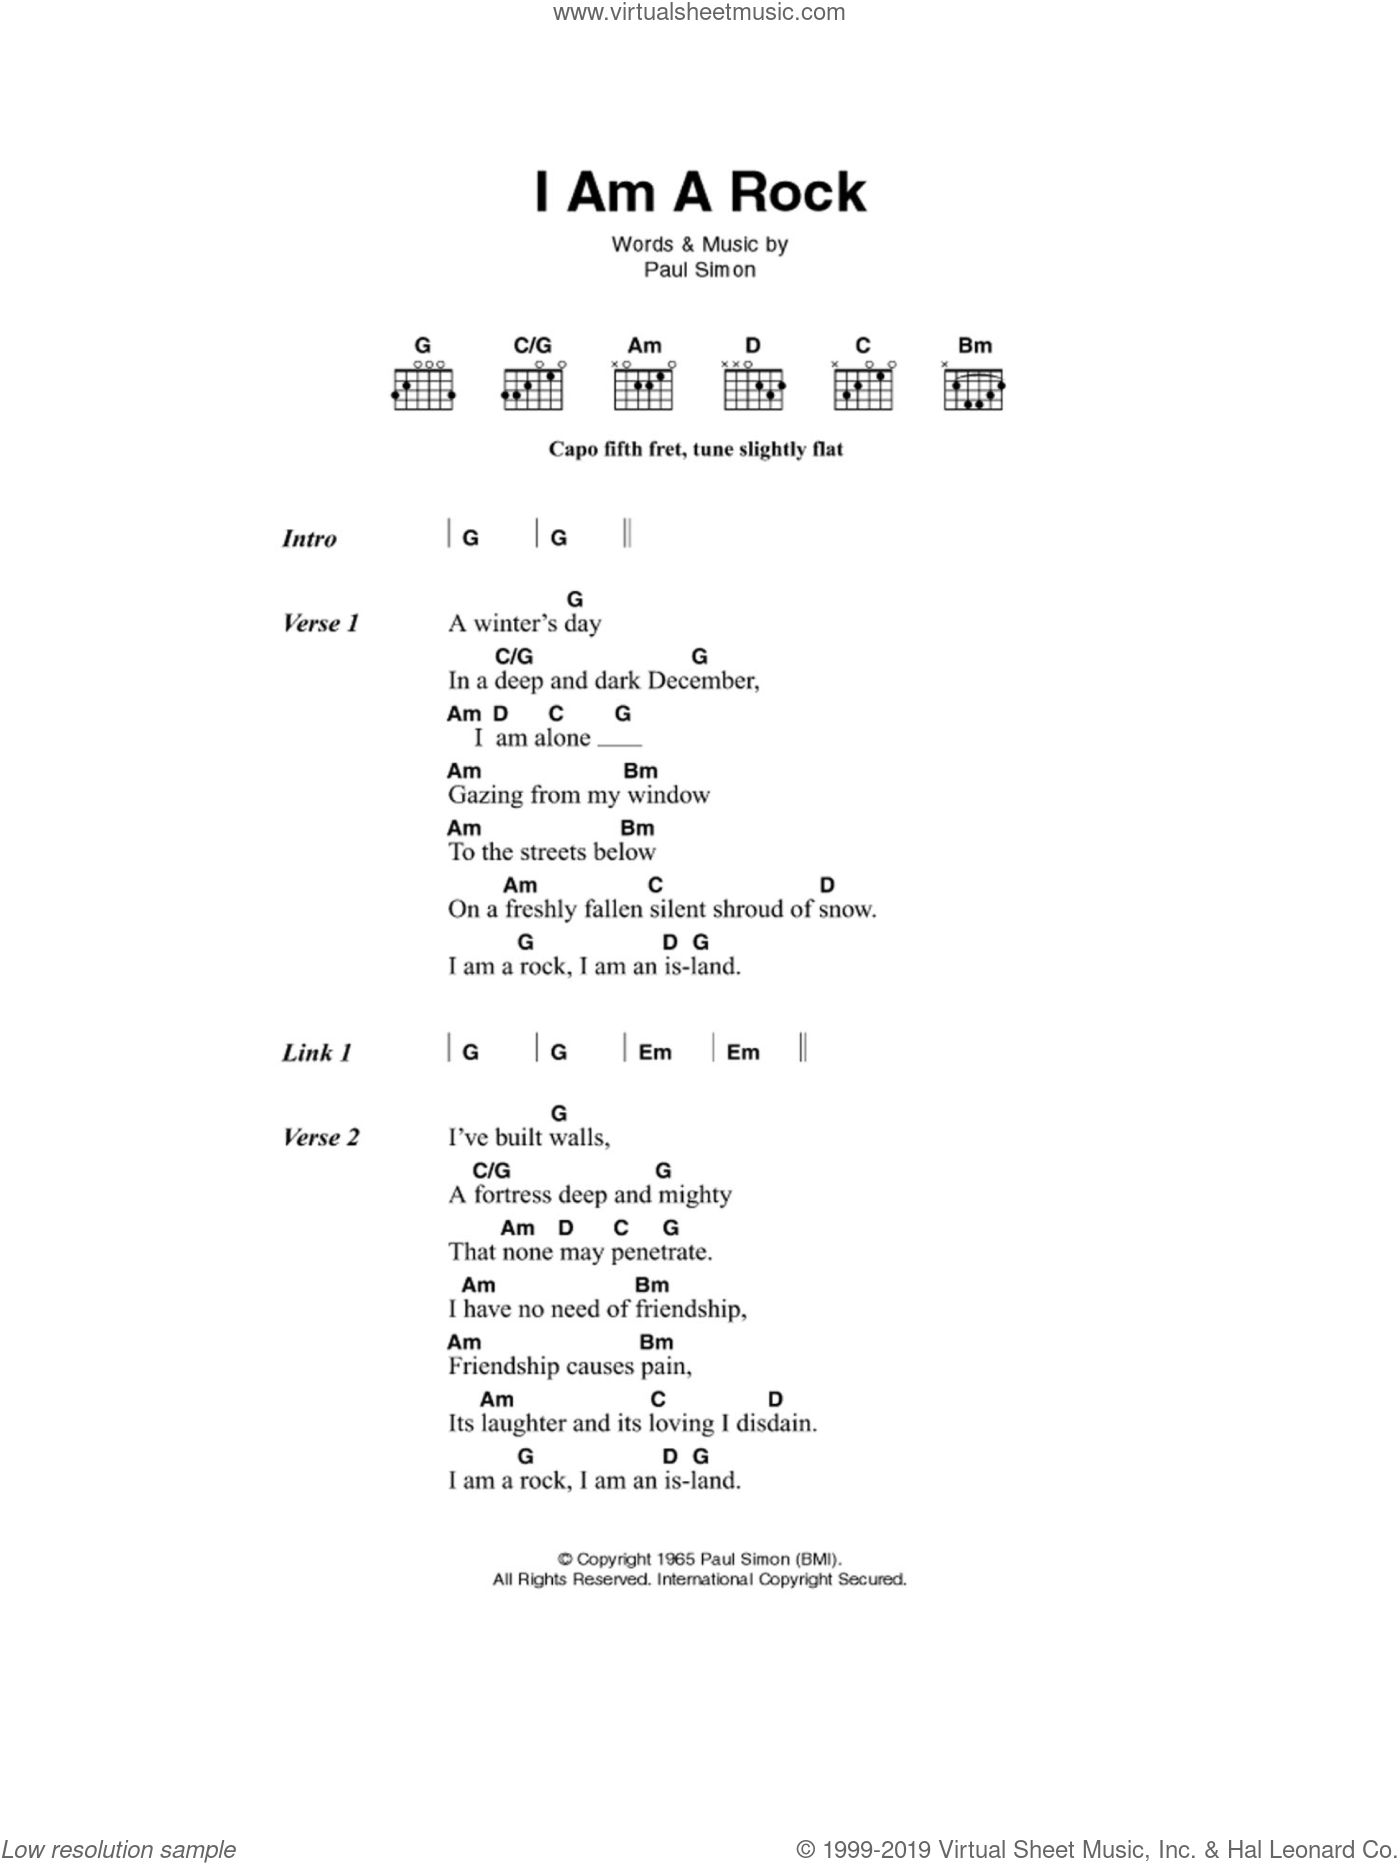 I Am A Rock sheet music for guitar (chords) by Paul Simon and Simon & Garfunkel. Score Image Preview.